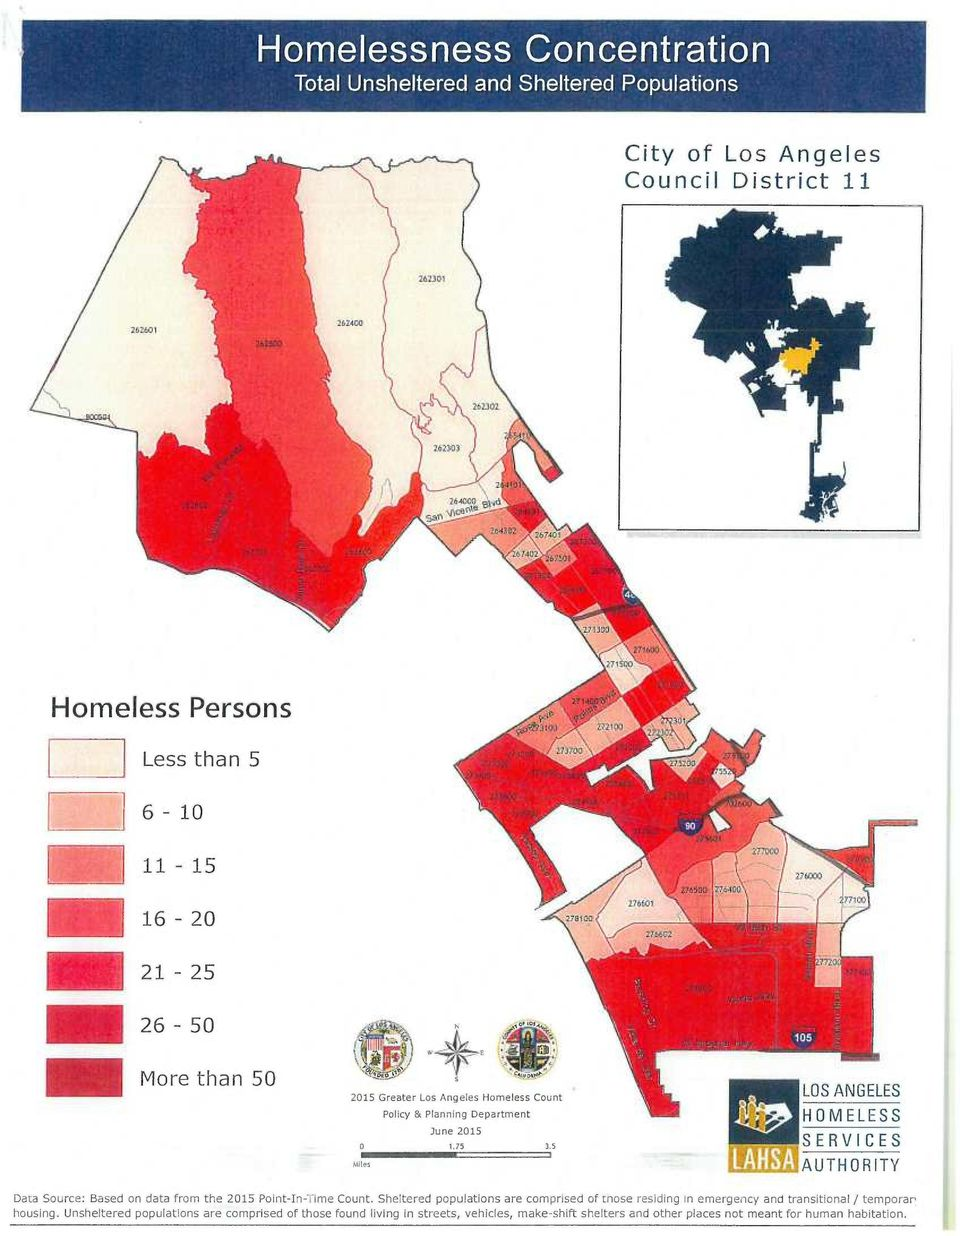 5 Mites LOS ANGELES HOMELESS SERVICES AUTHORITY Data Source: Based on data from the 2015 Point-In-Time Count.